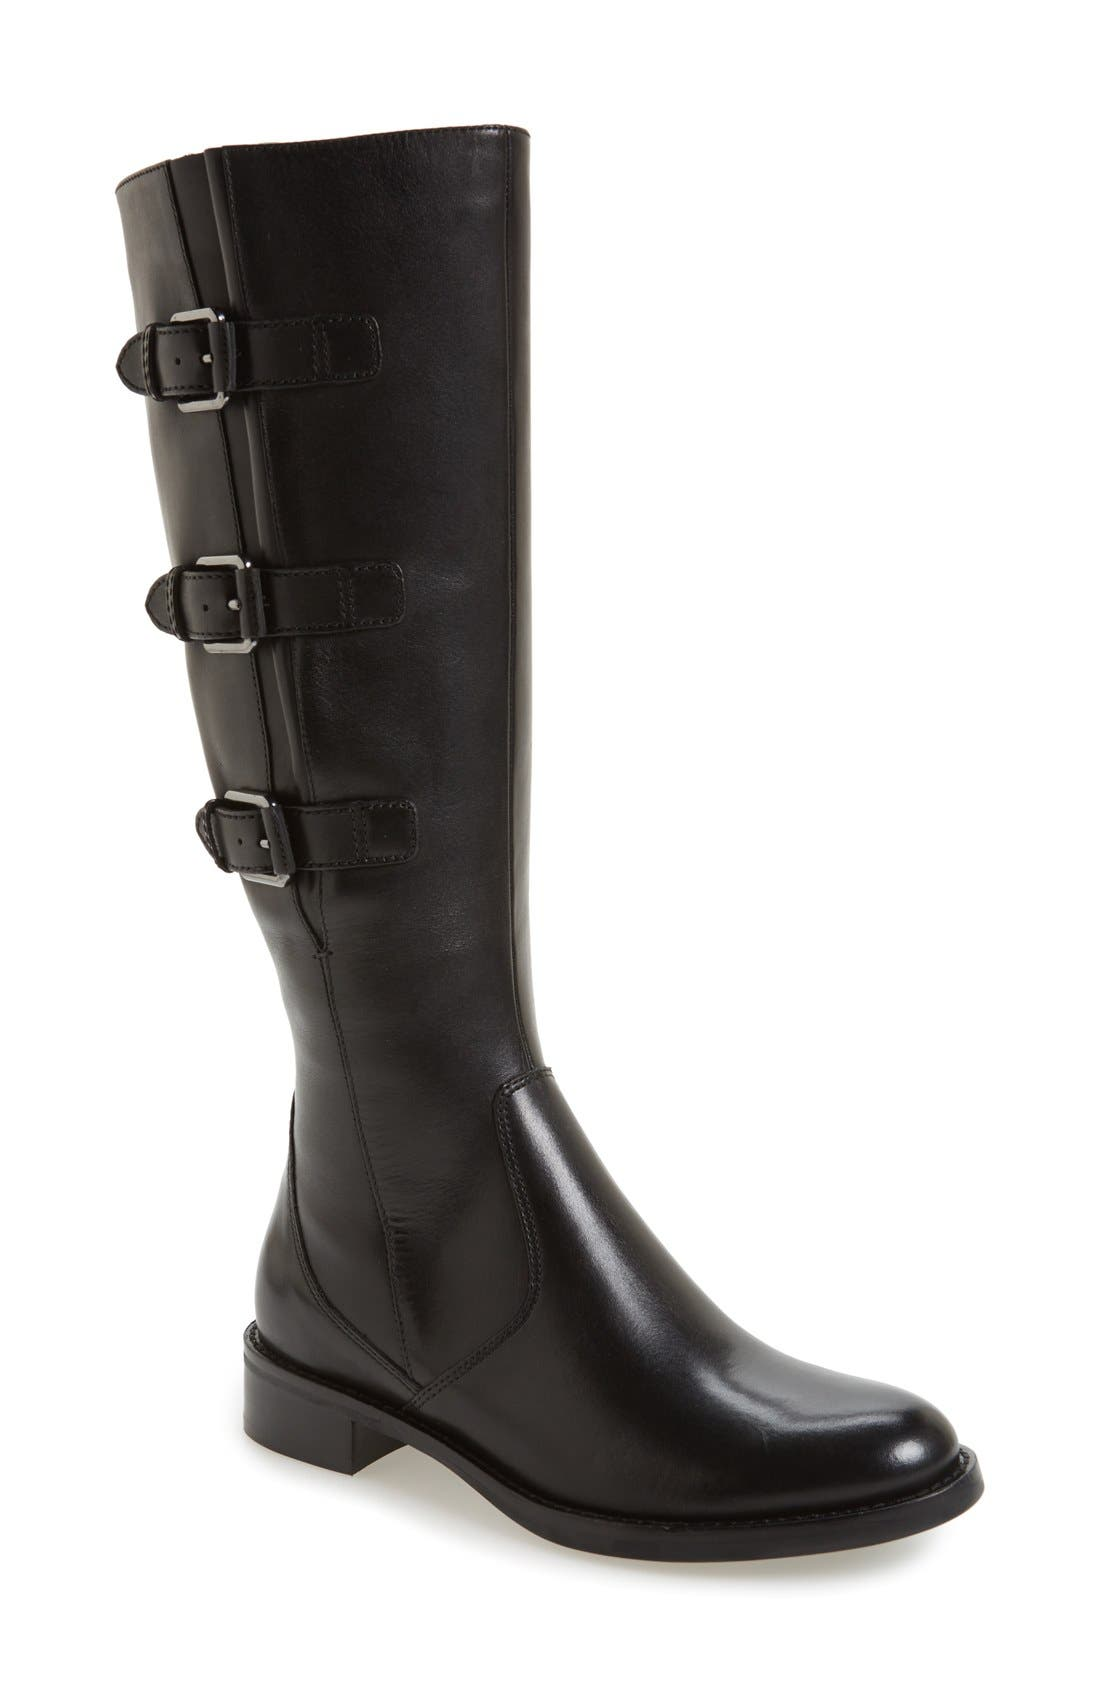 Alternate Image 1 Selected - ECCO 'Hobart' Boot